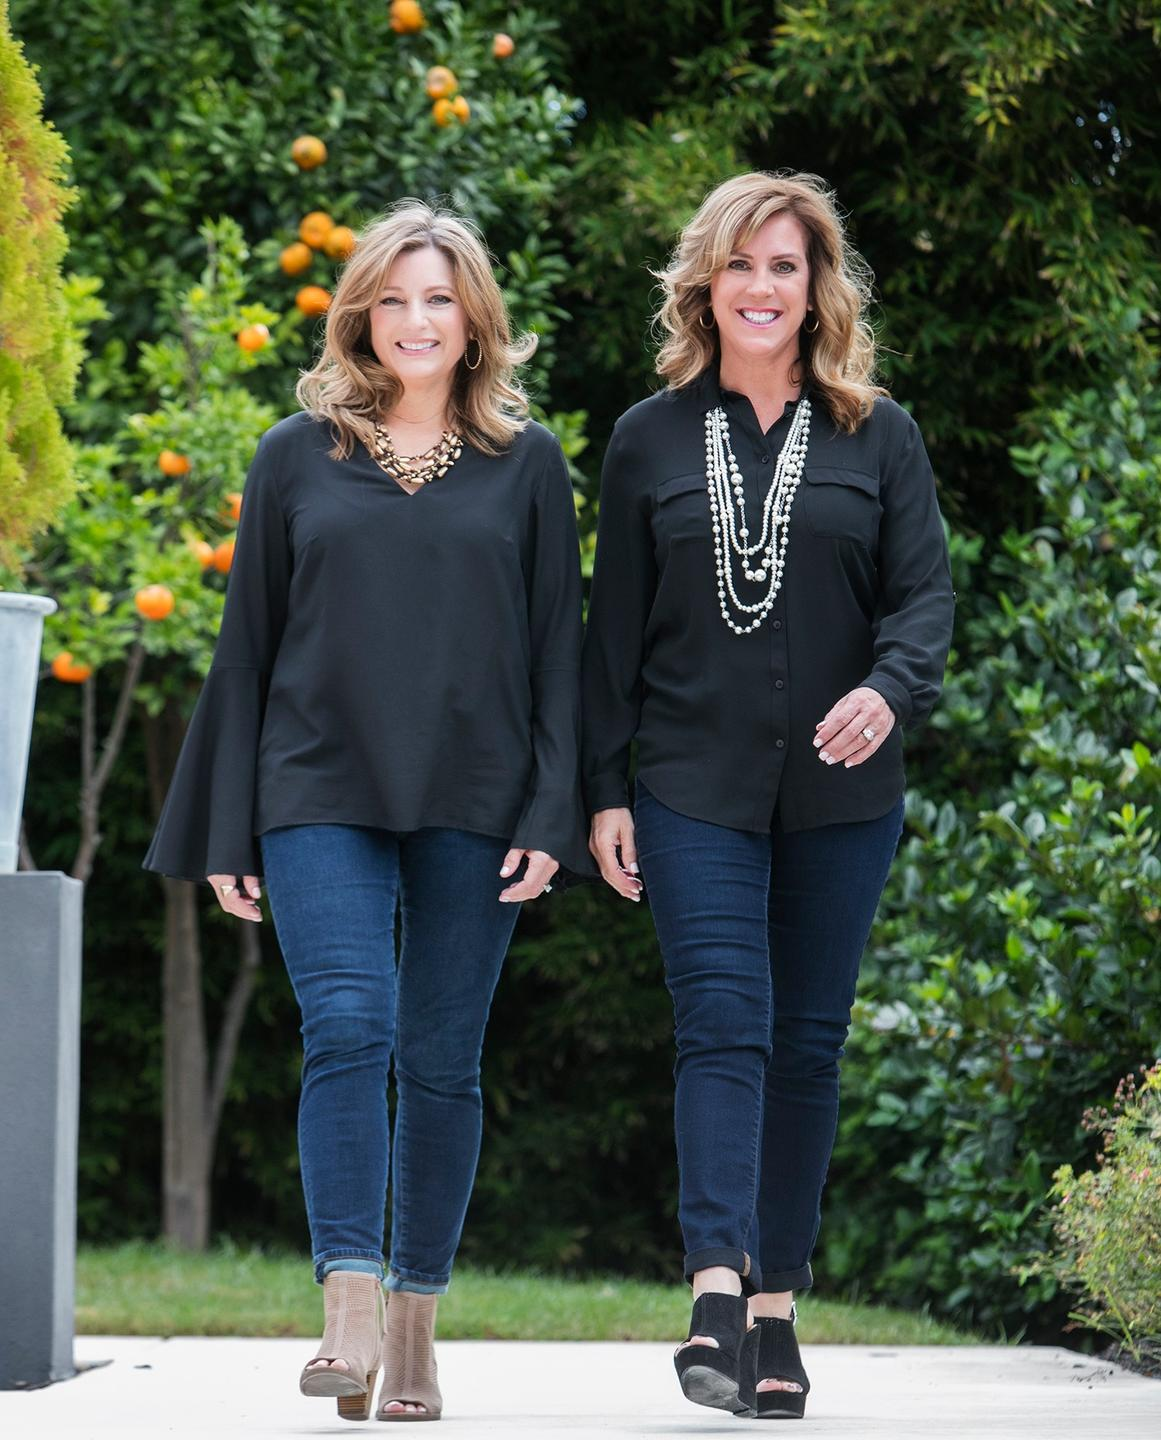 Debbie Boggs and Julie Young